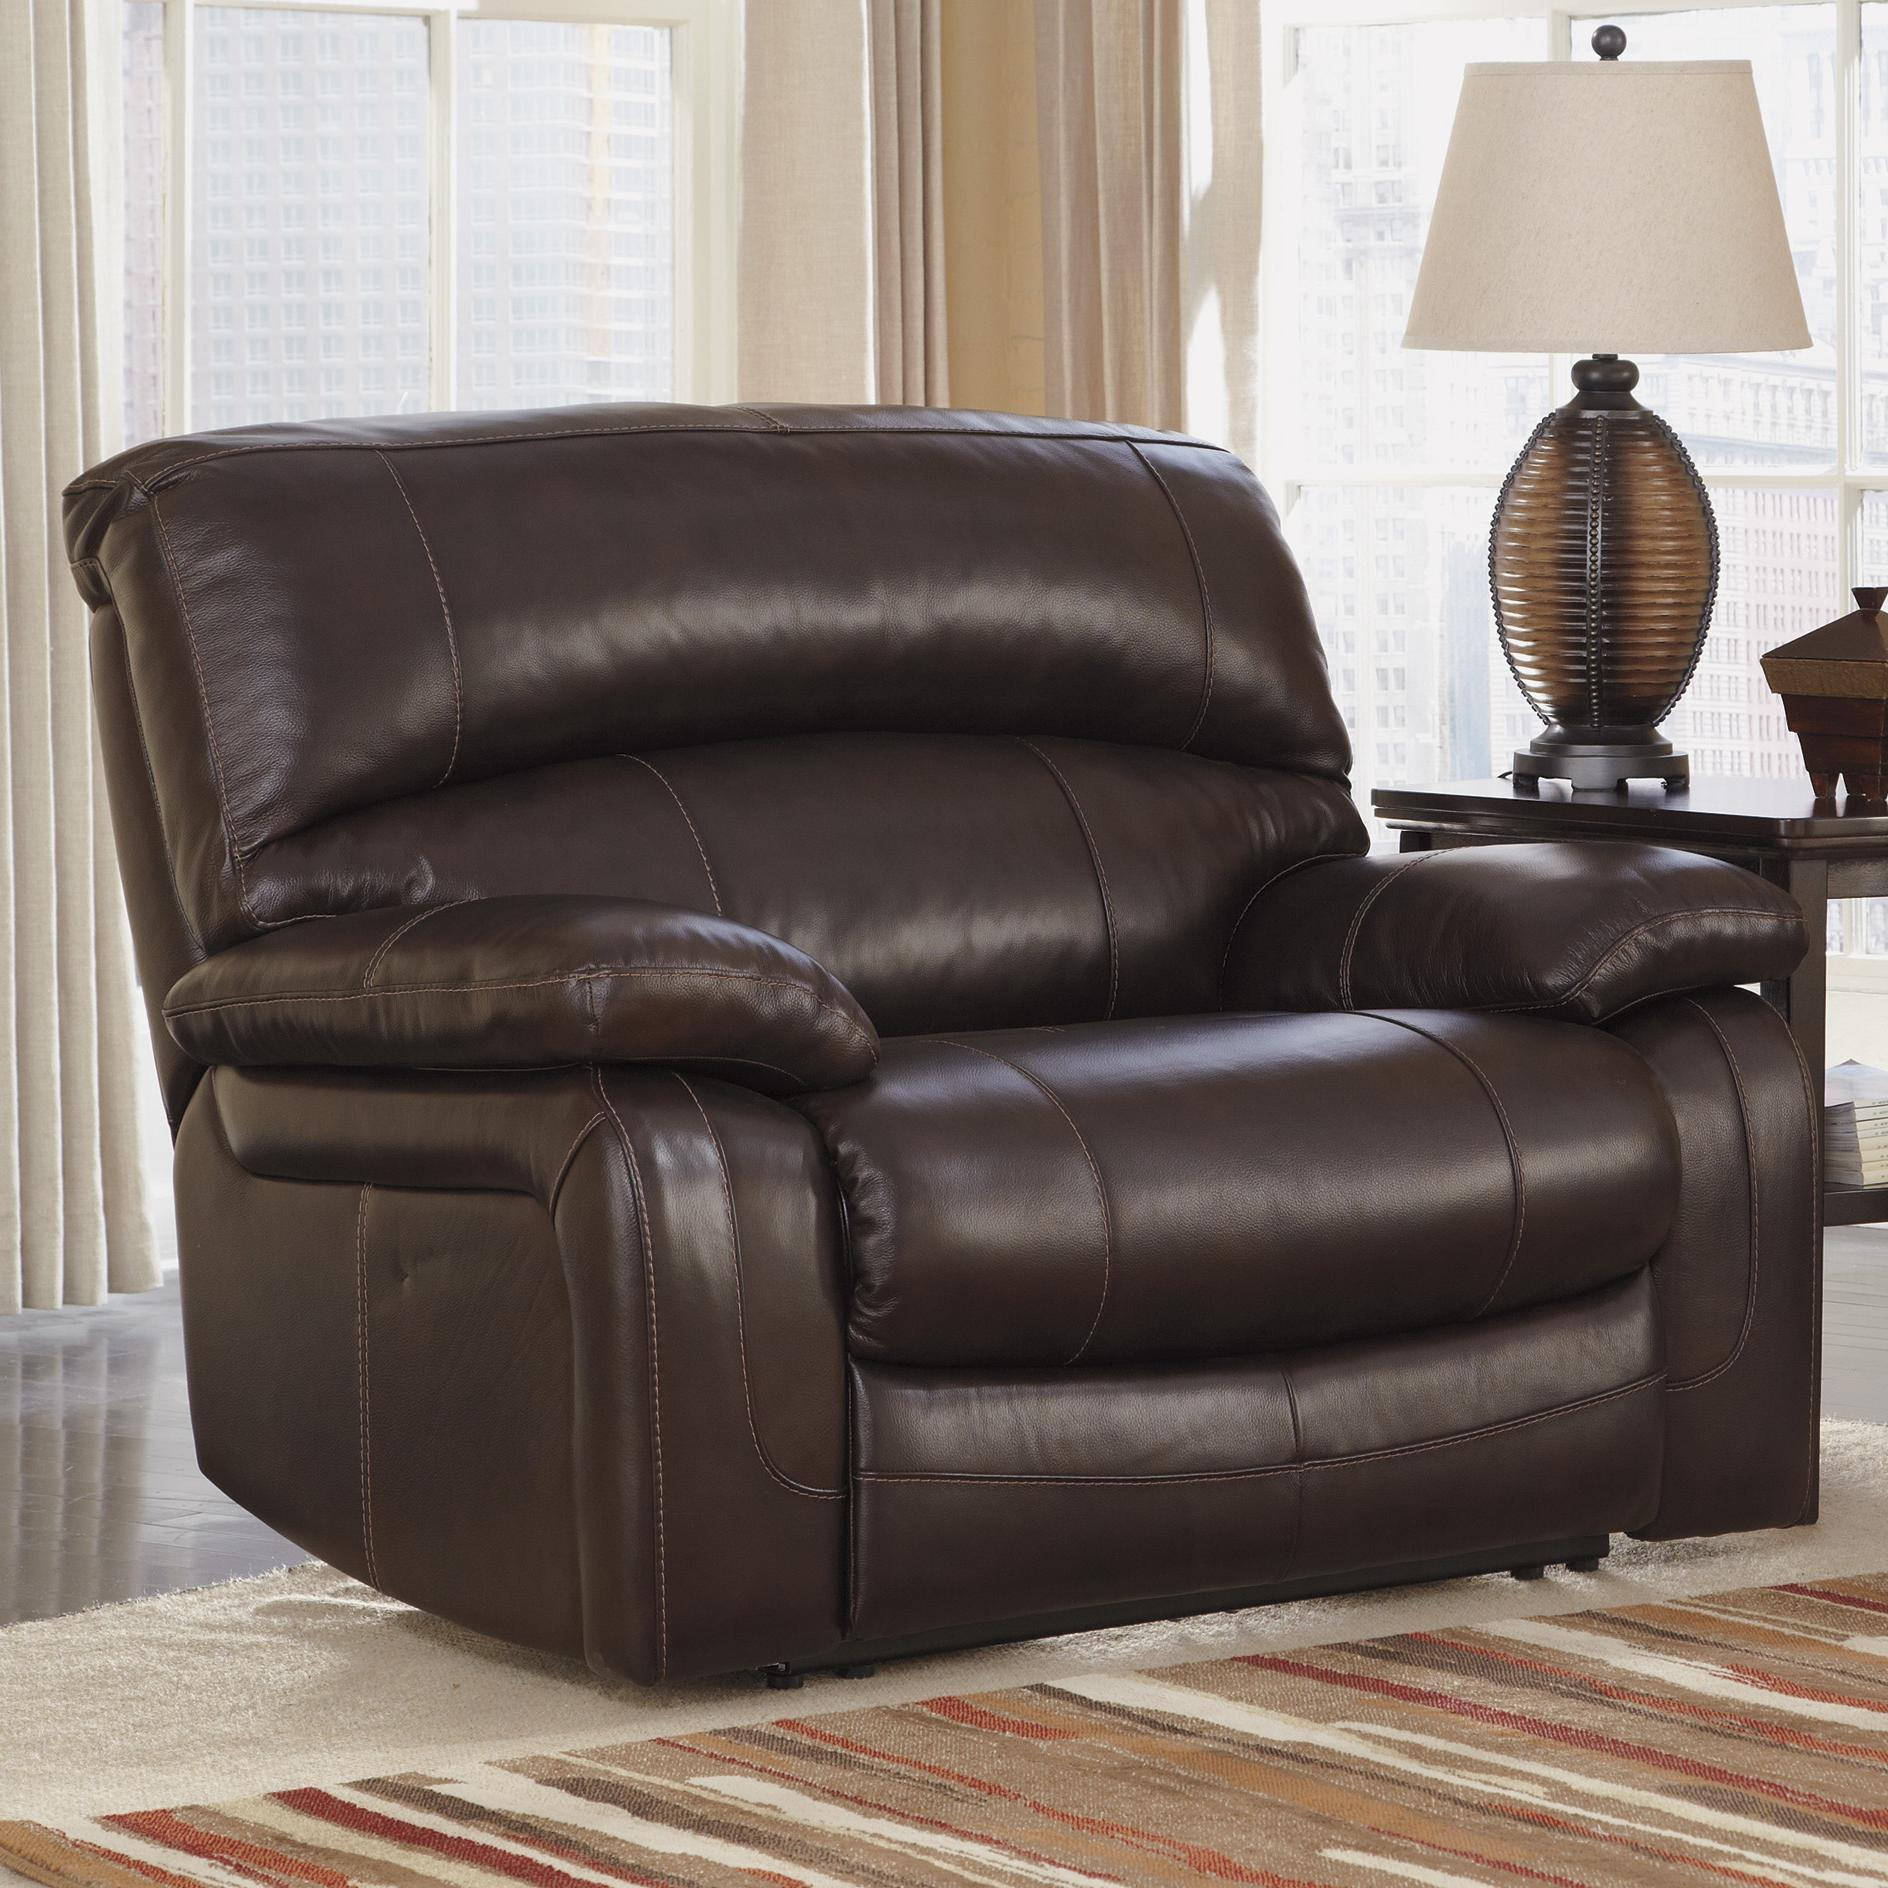 rocker furniture recliners recliner ashley ranika classy